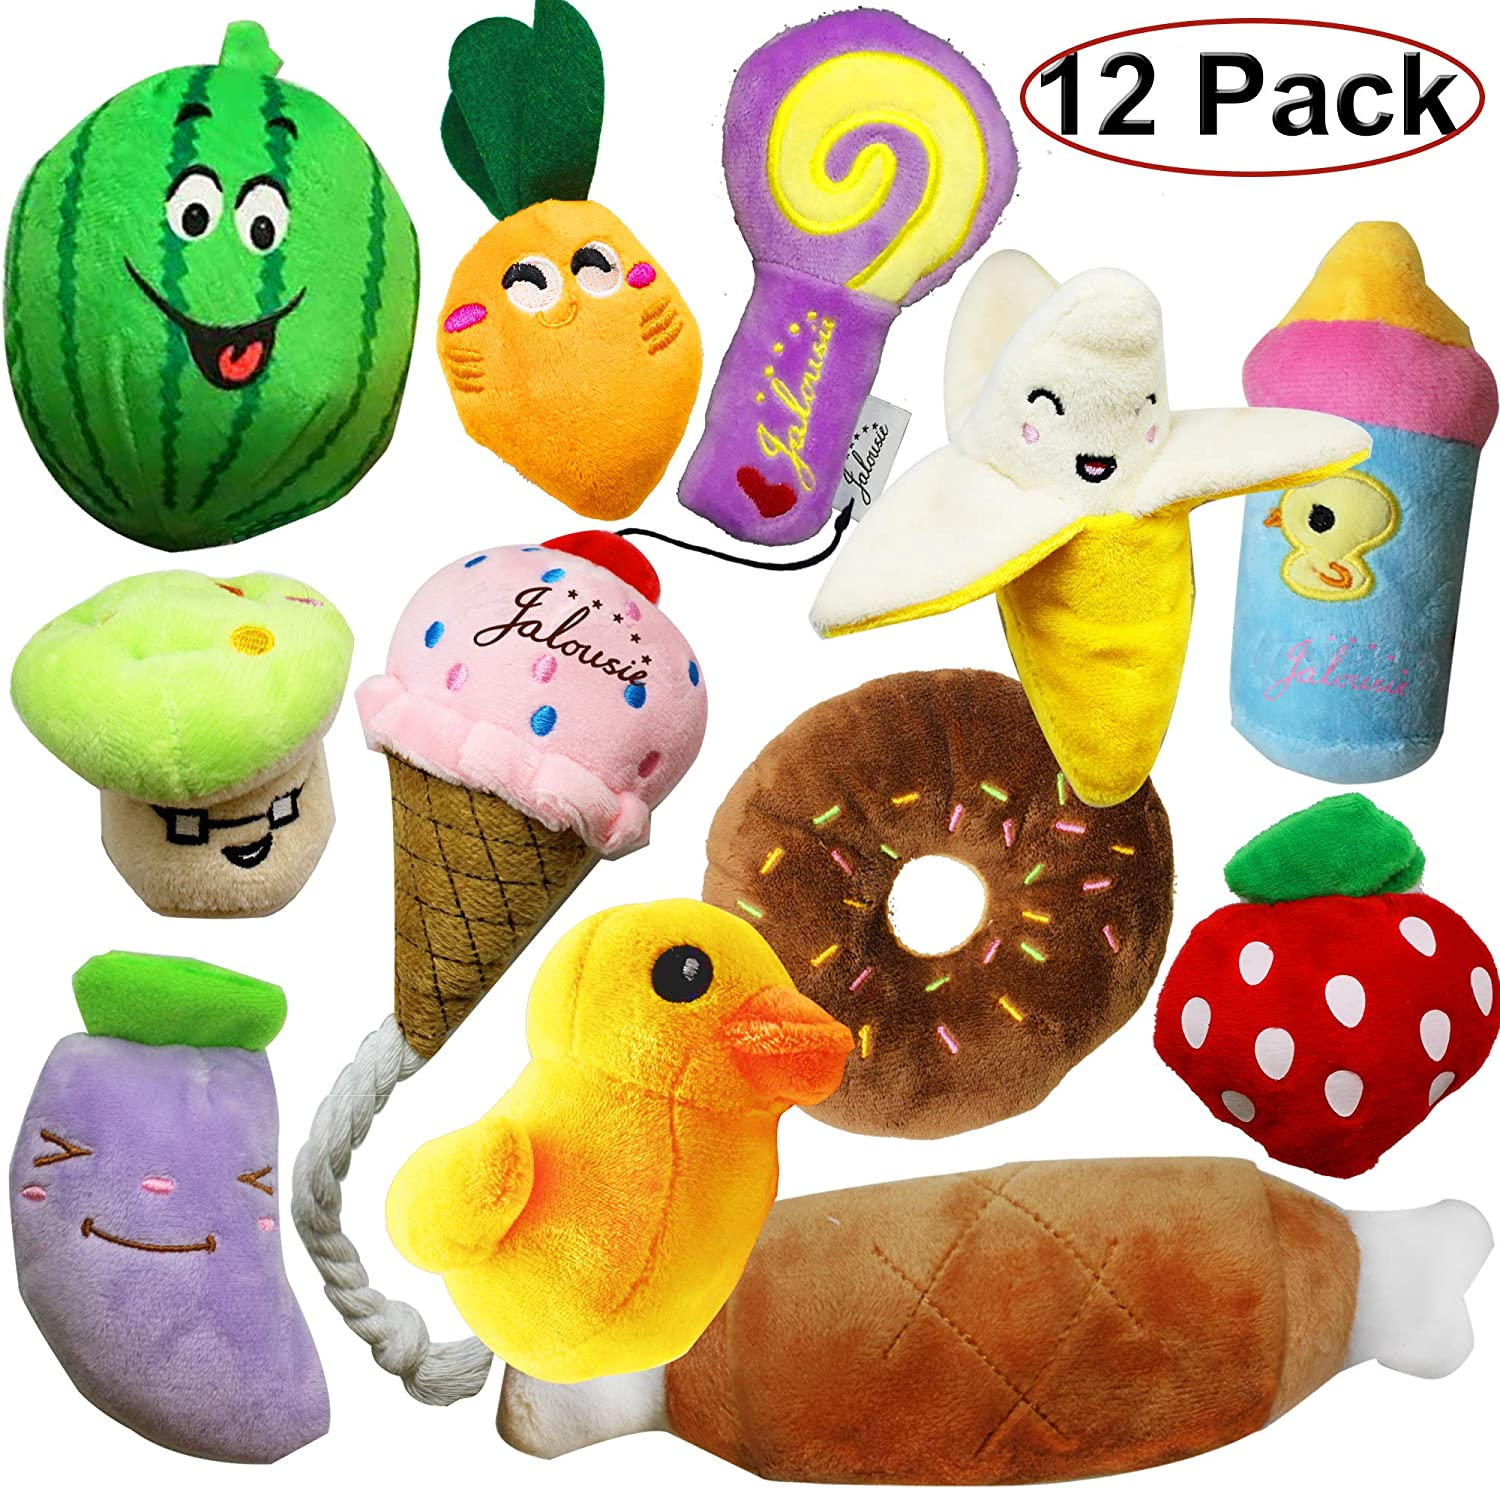 Jalousie 12 Pack Dog Squeaky Toys Cute Plush Toys Small Medium Dog Pets